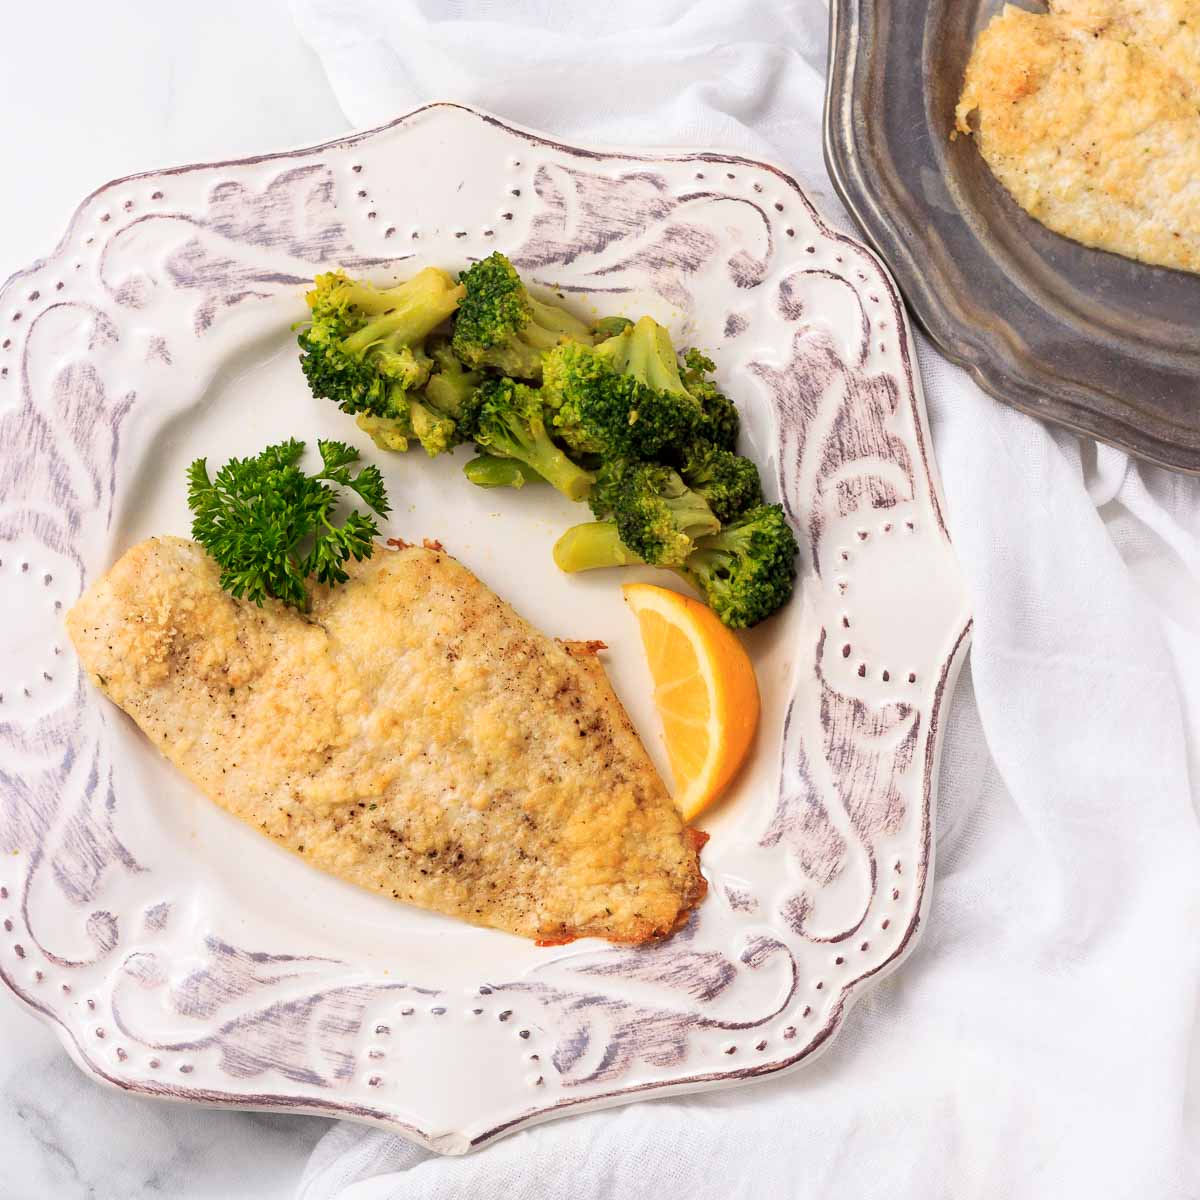 One low carb breaded and crusted fish fillet with broccoli.